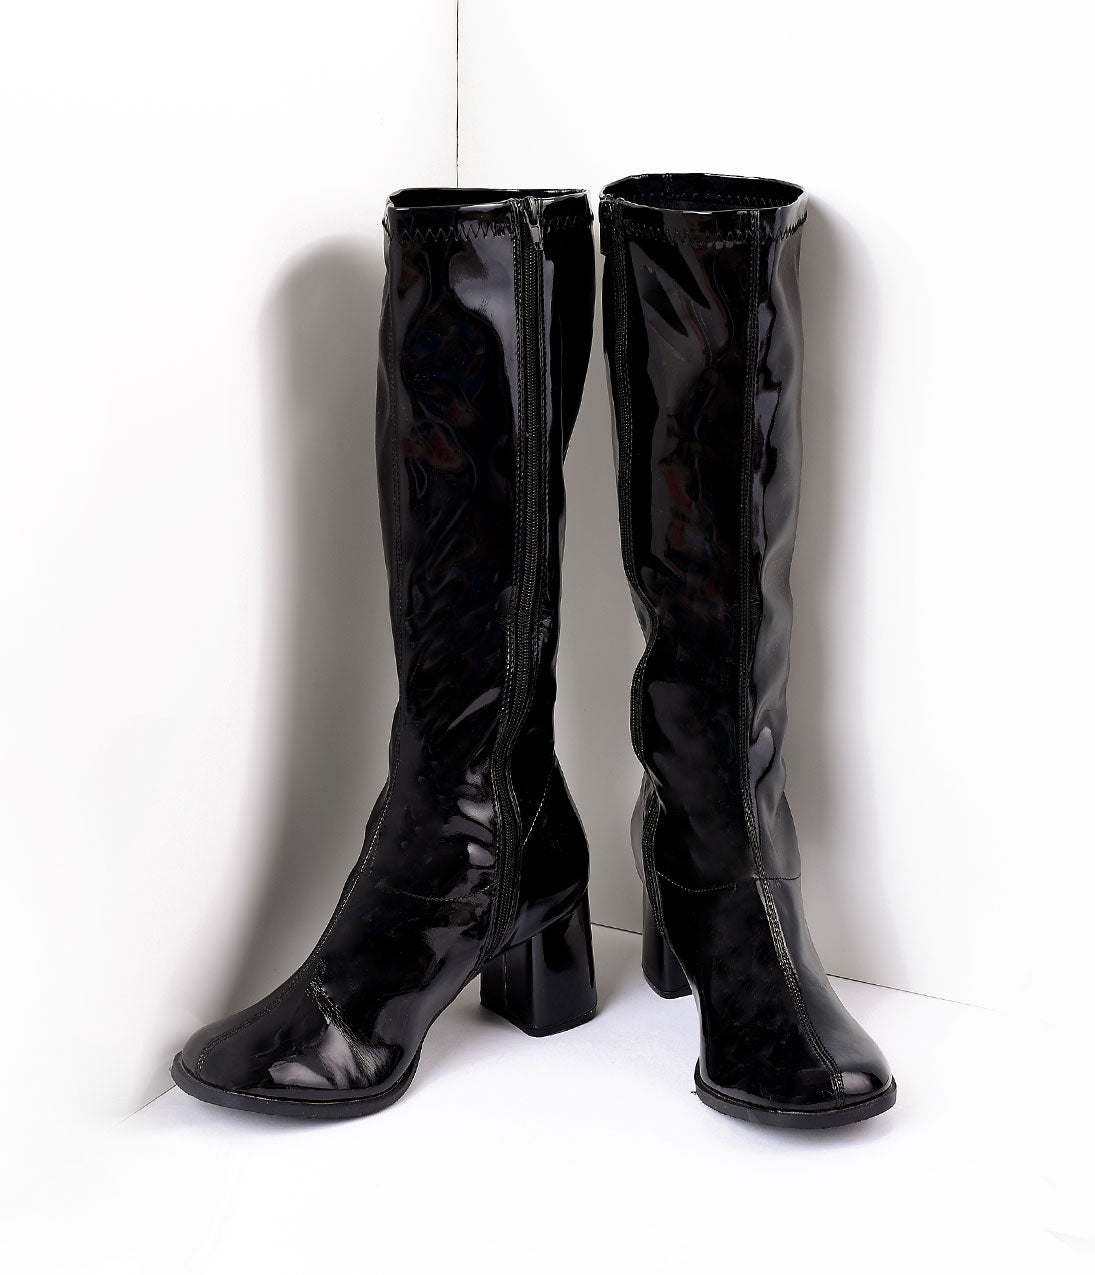 Vintage Boots- Winter Rain and Snow Boots Black Patent Knee High Go Go Boots $58.00 AT vintagedancer.com